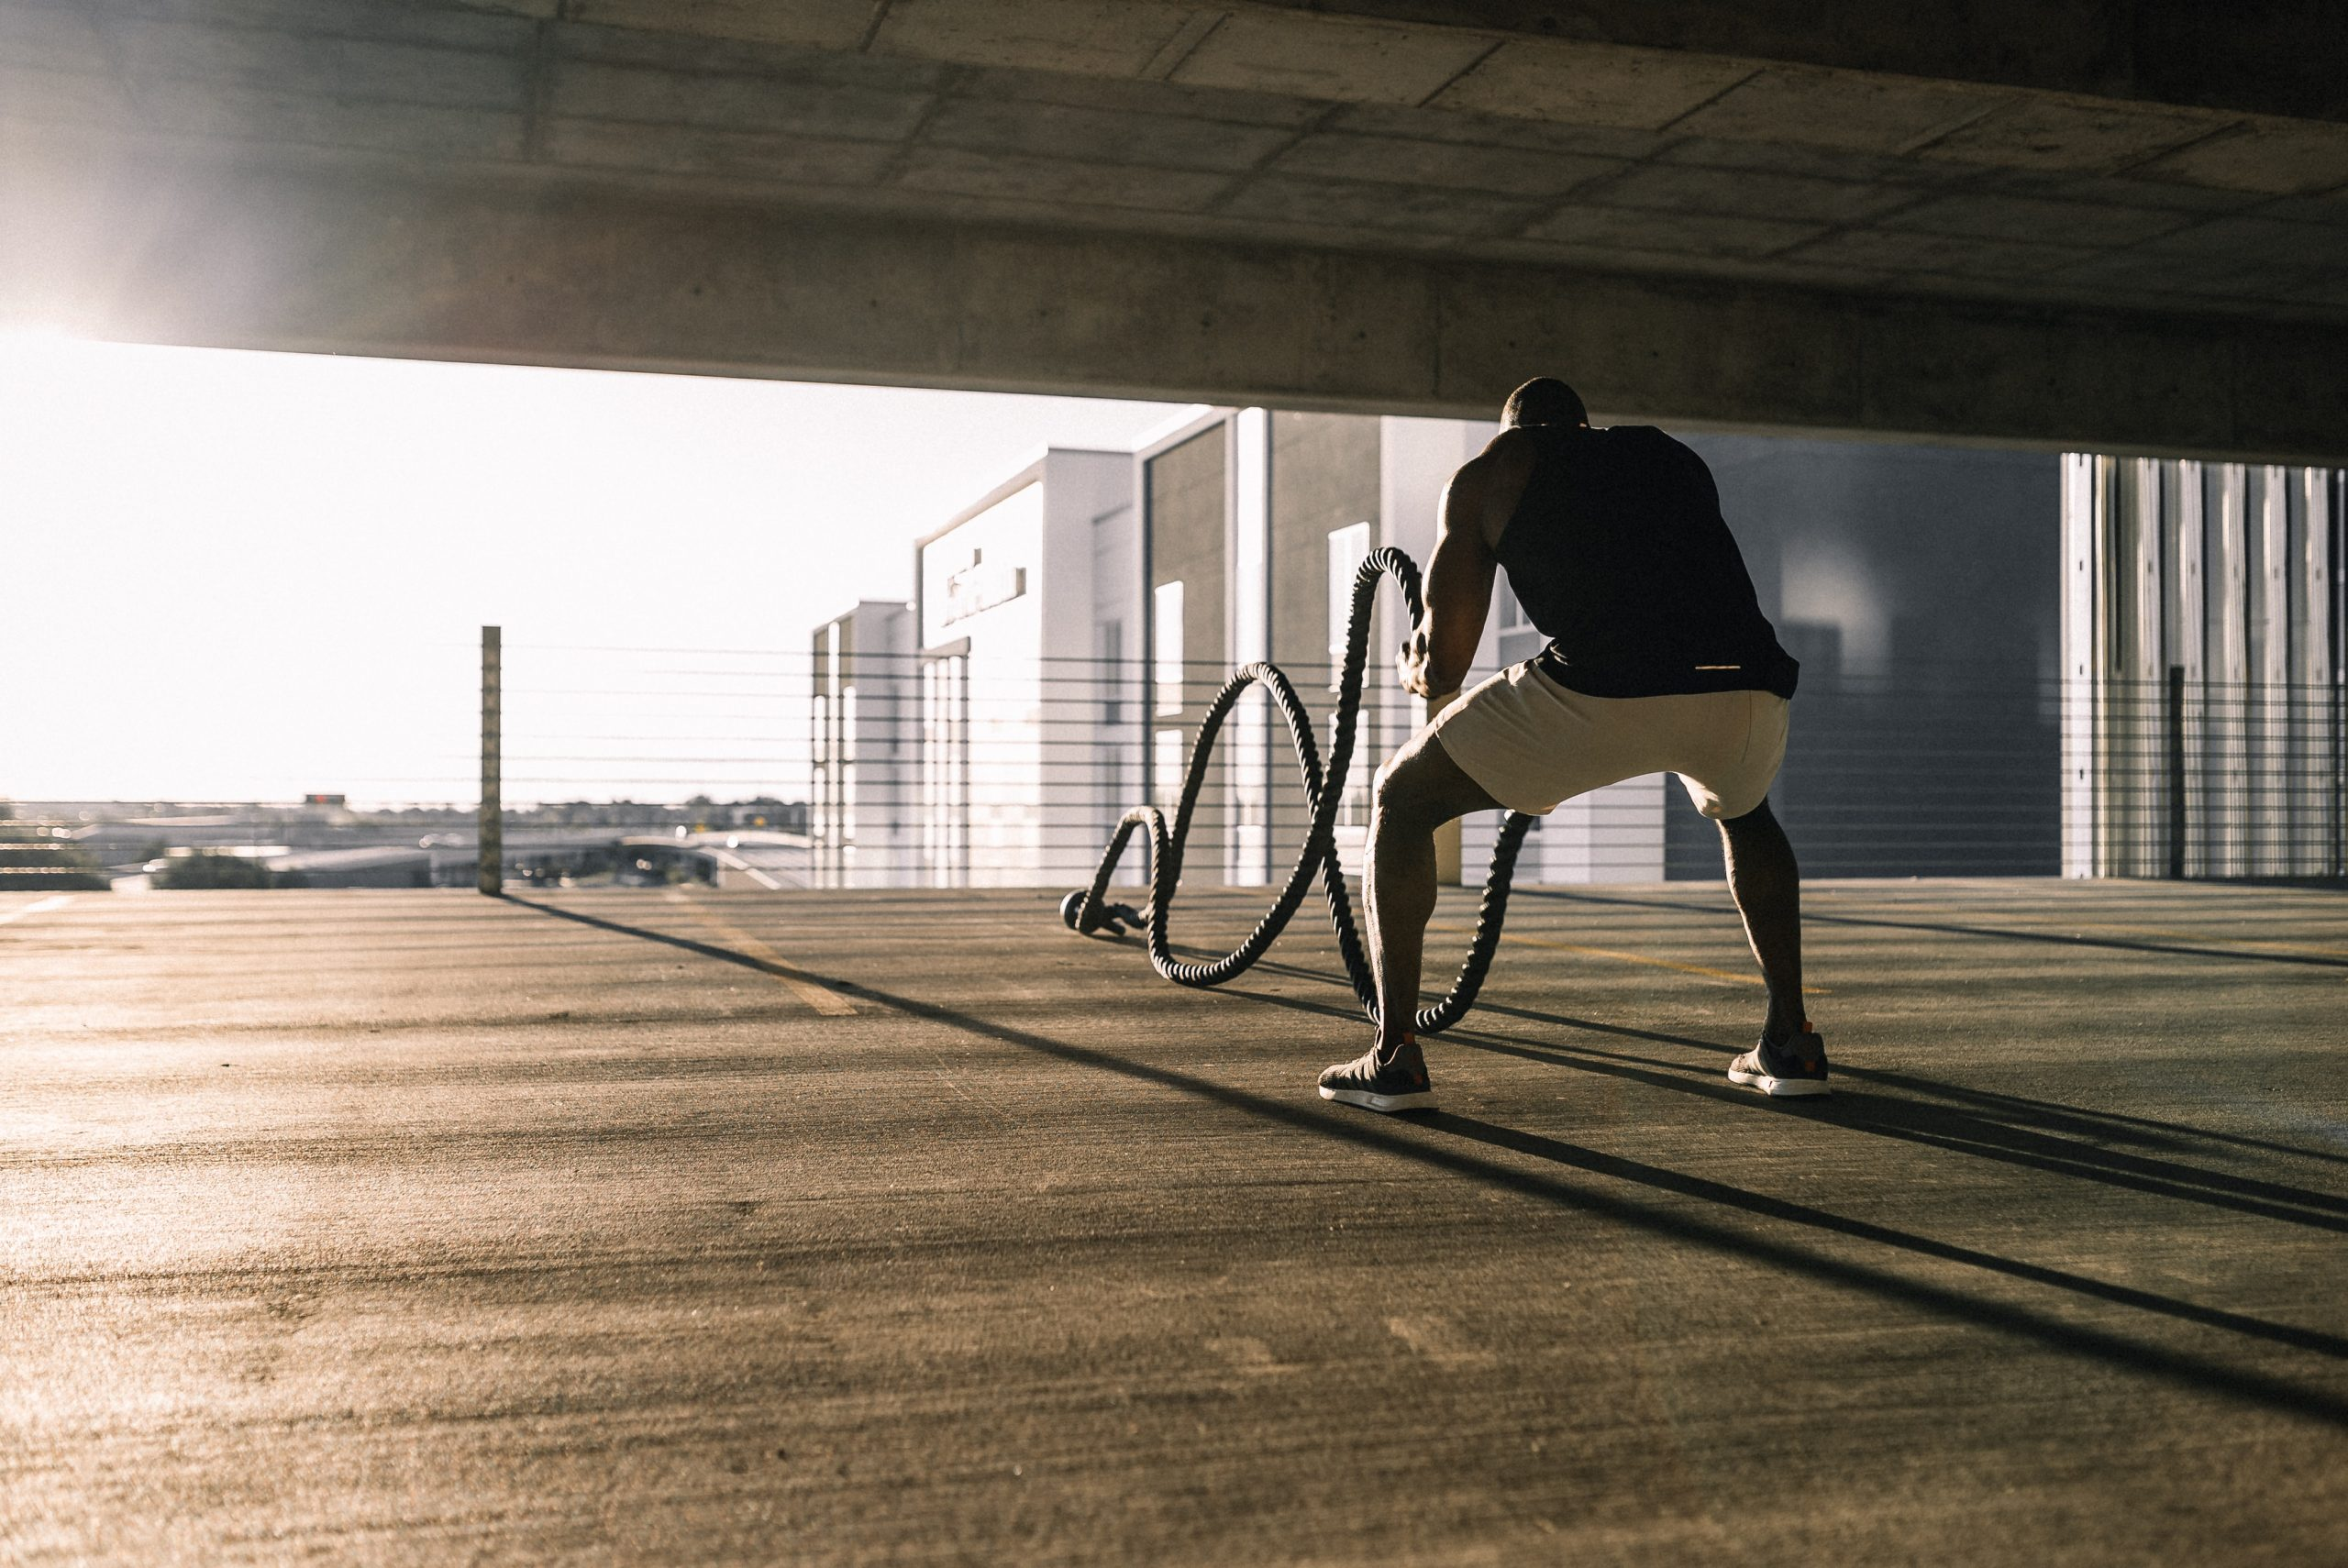 Man exercising with ropes in a parking lot